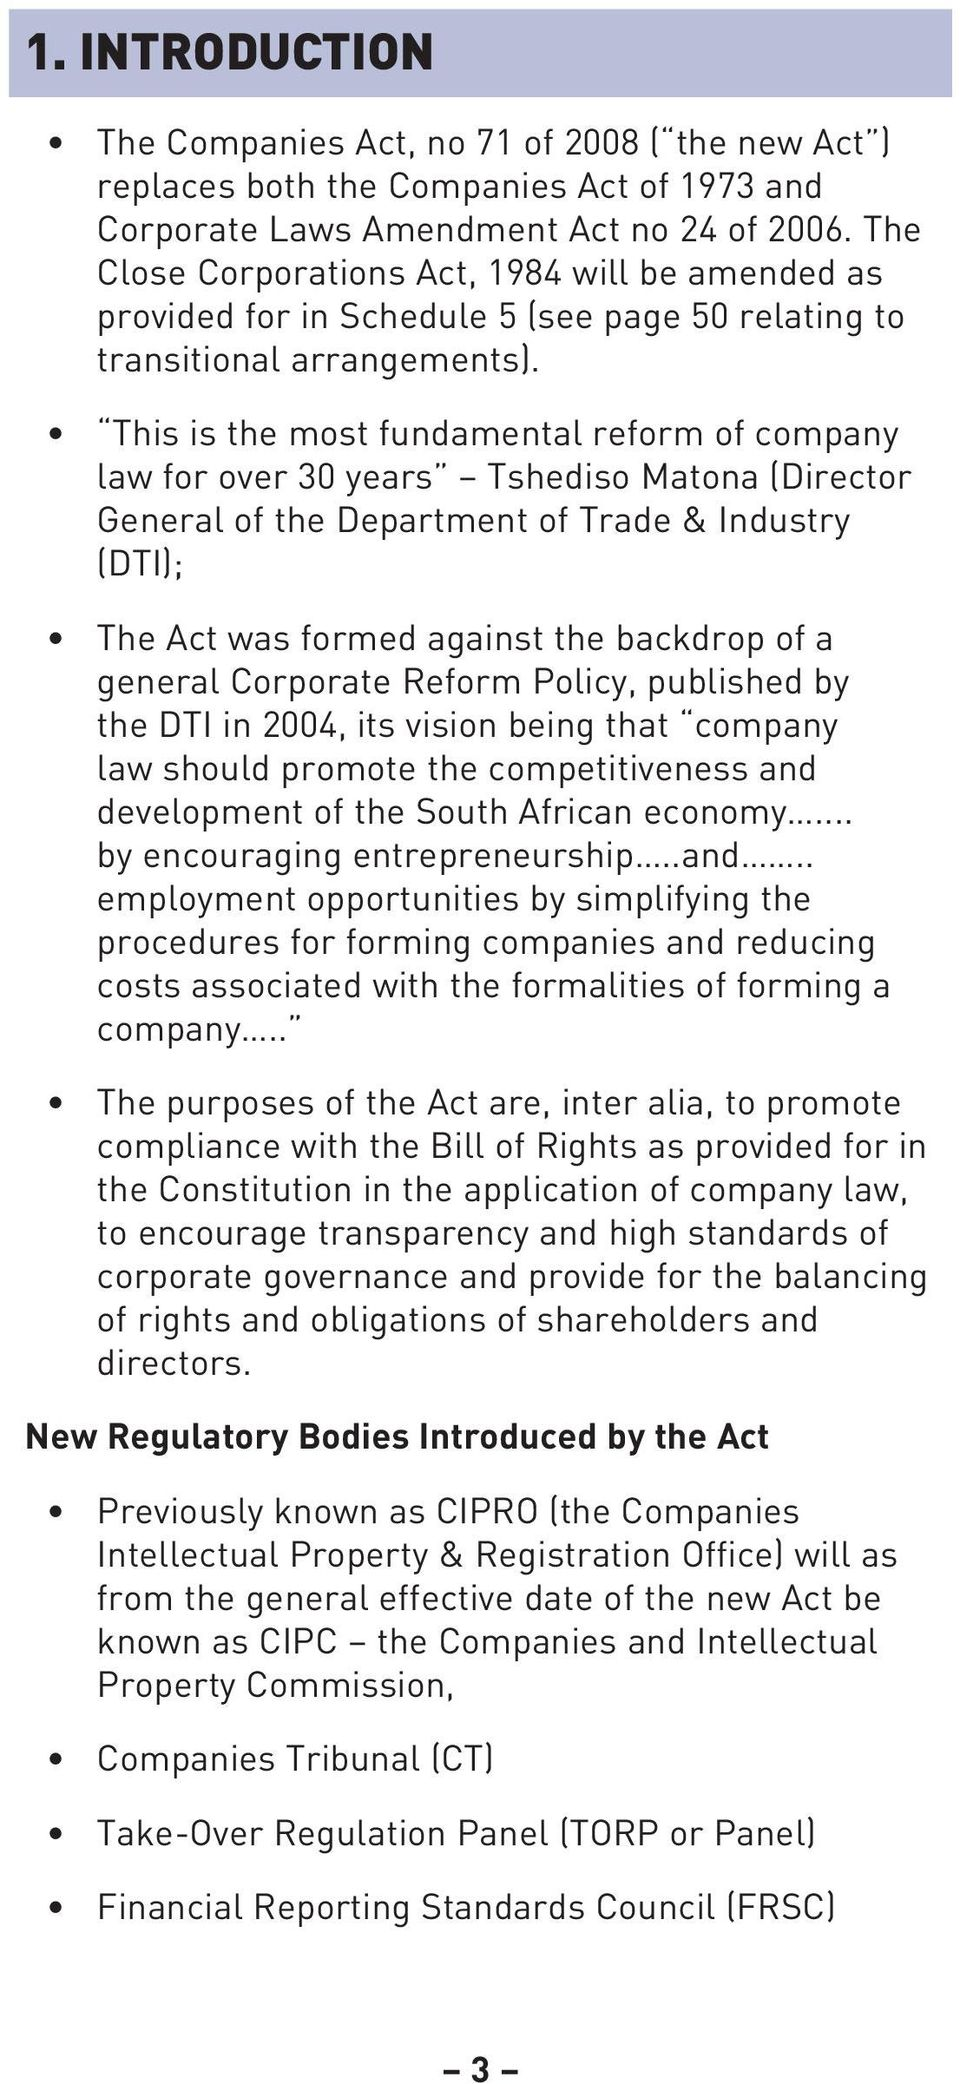 This is the most fundamental reform of company law for over 30 years Tshediso Matona (Director General of the Department of Trade & Industry (DTI); The Act was formed against the backdrop of a